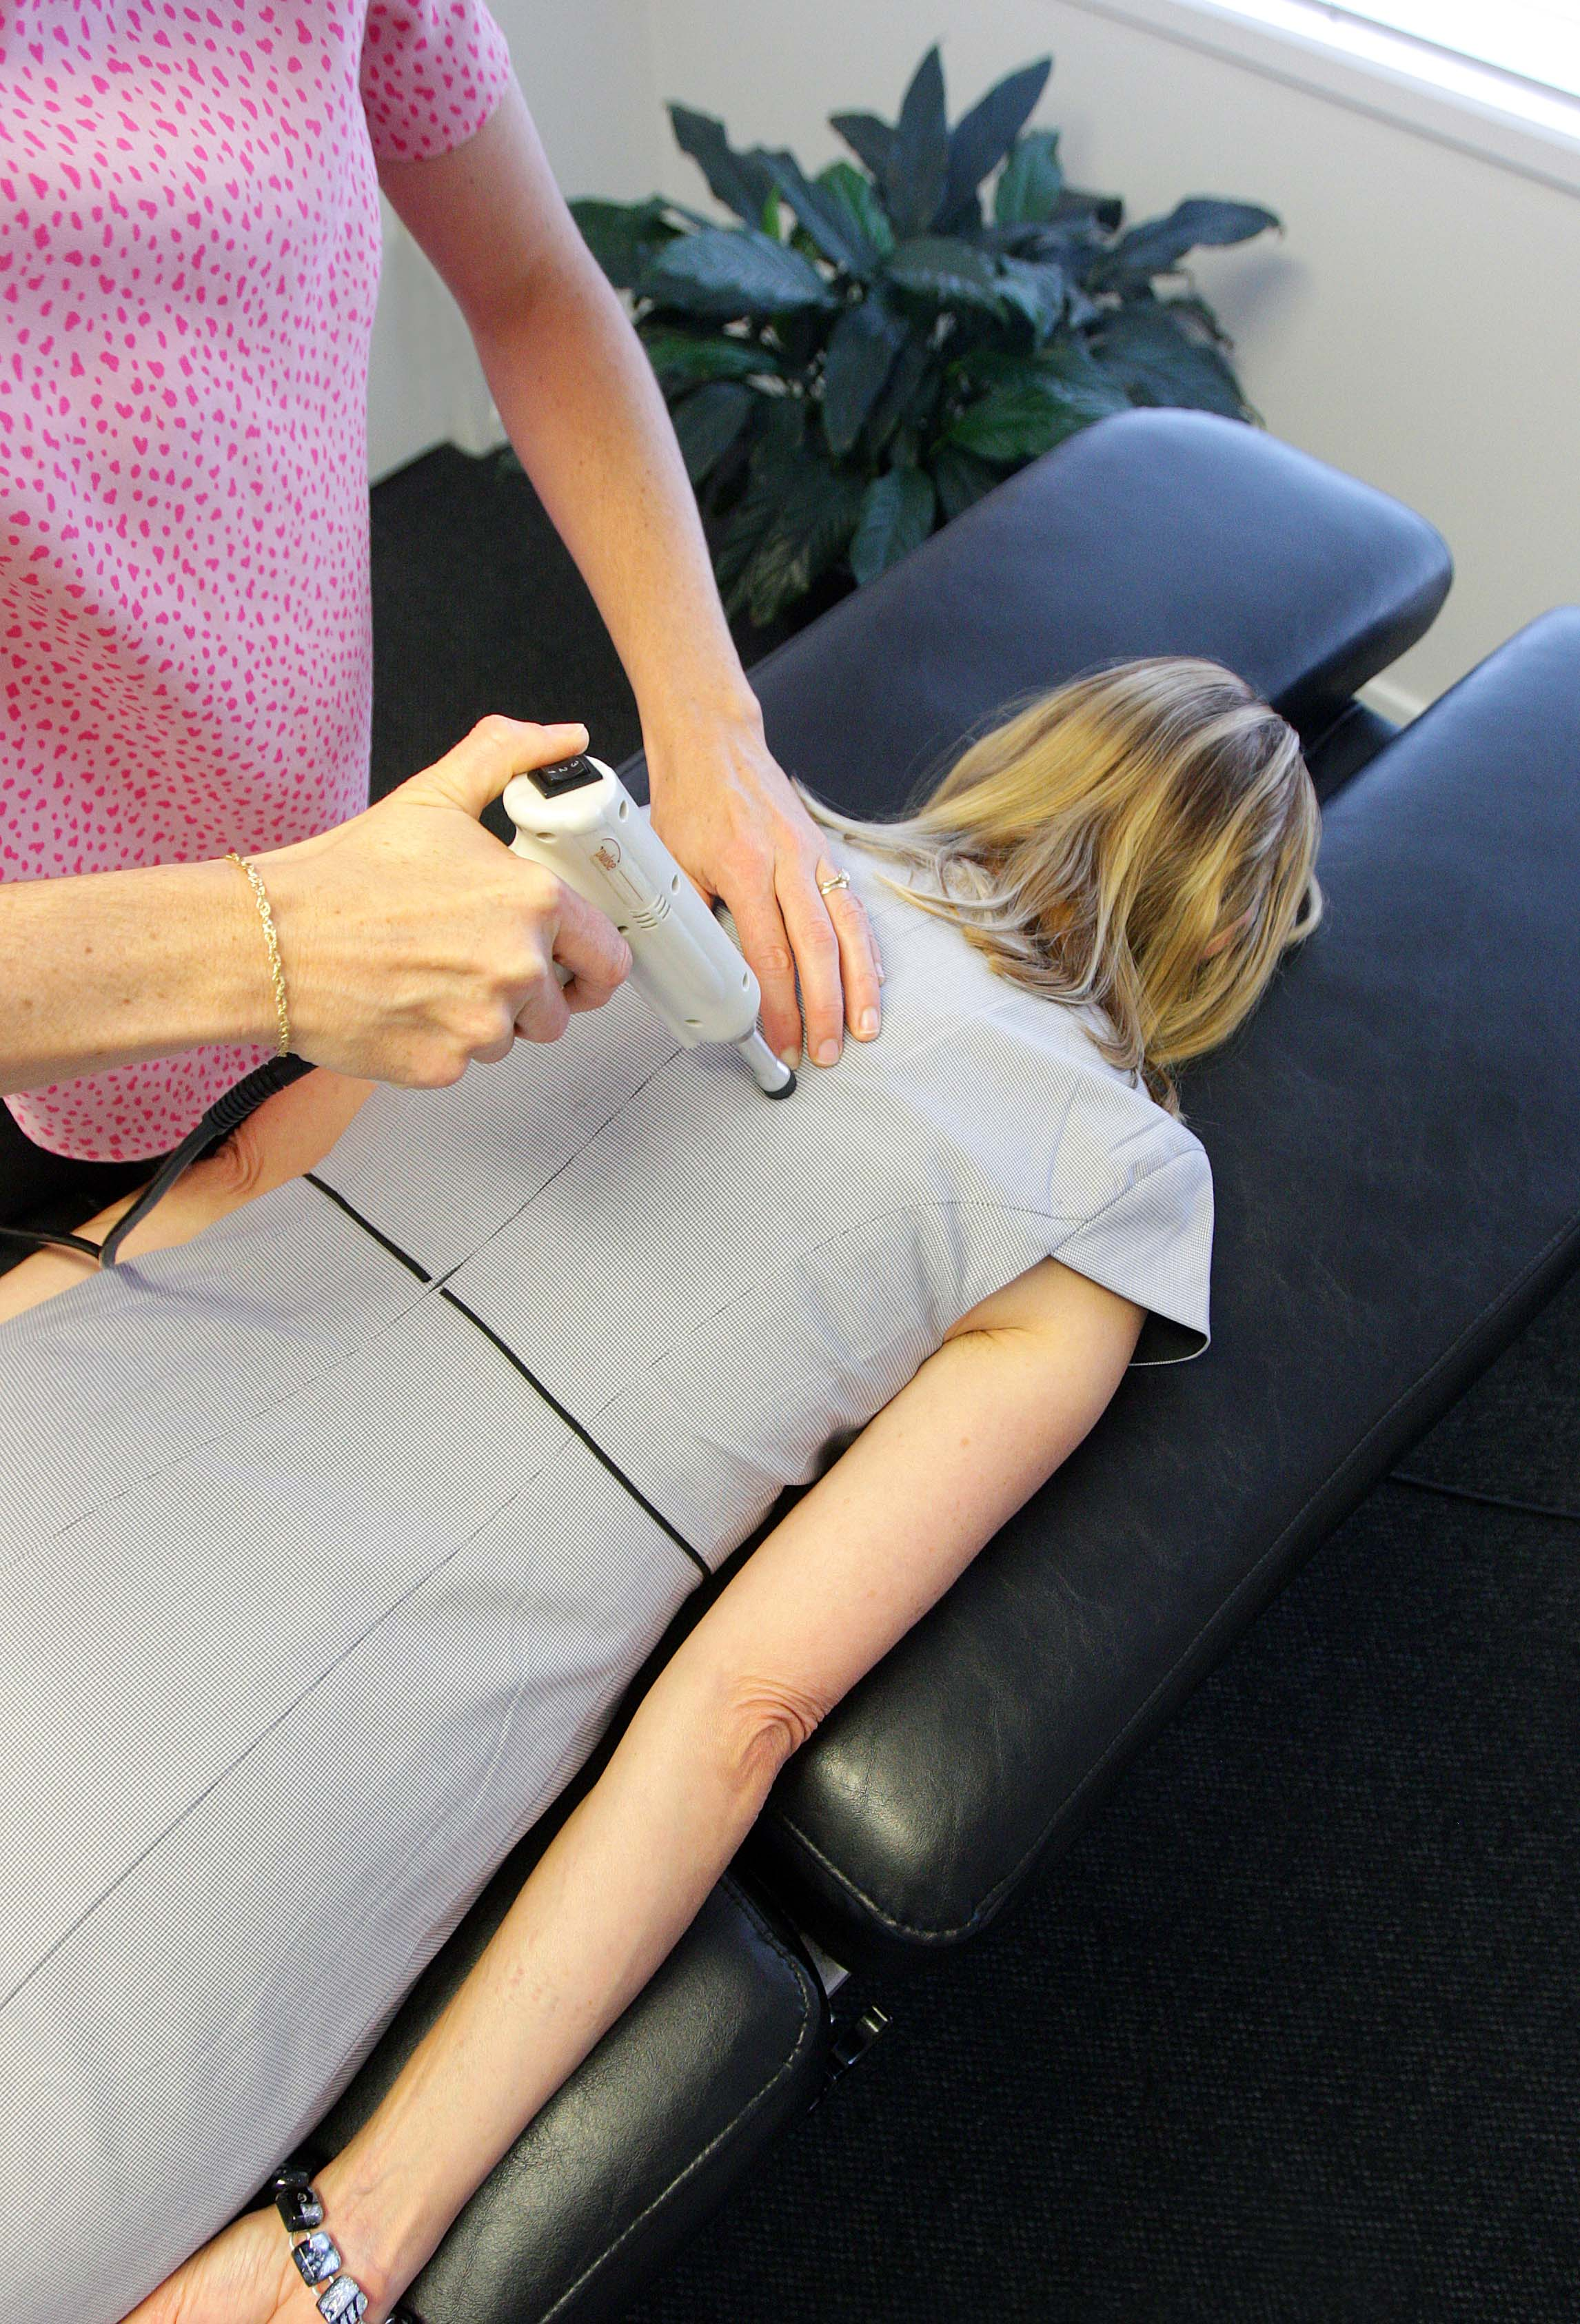 Our Impulse instruments offer an effective, yet gentle option for making adjustments to the spine